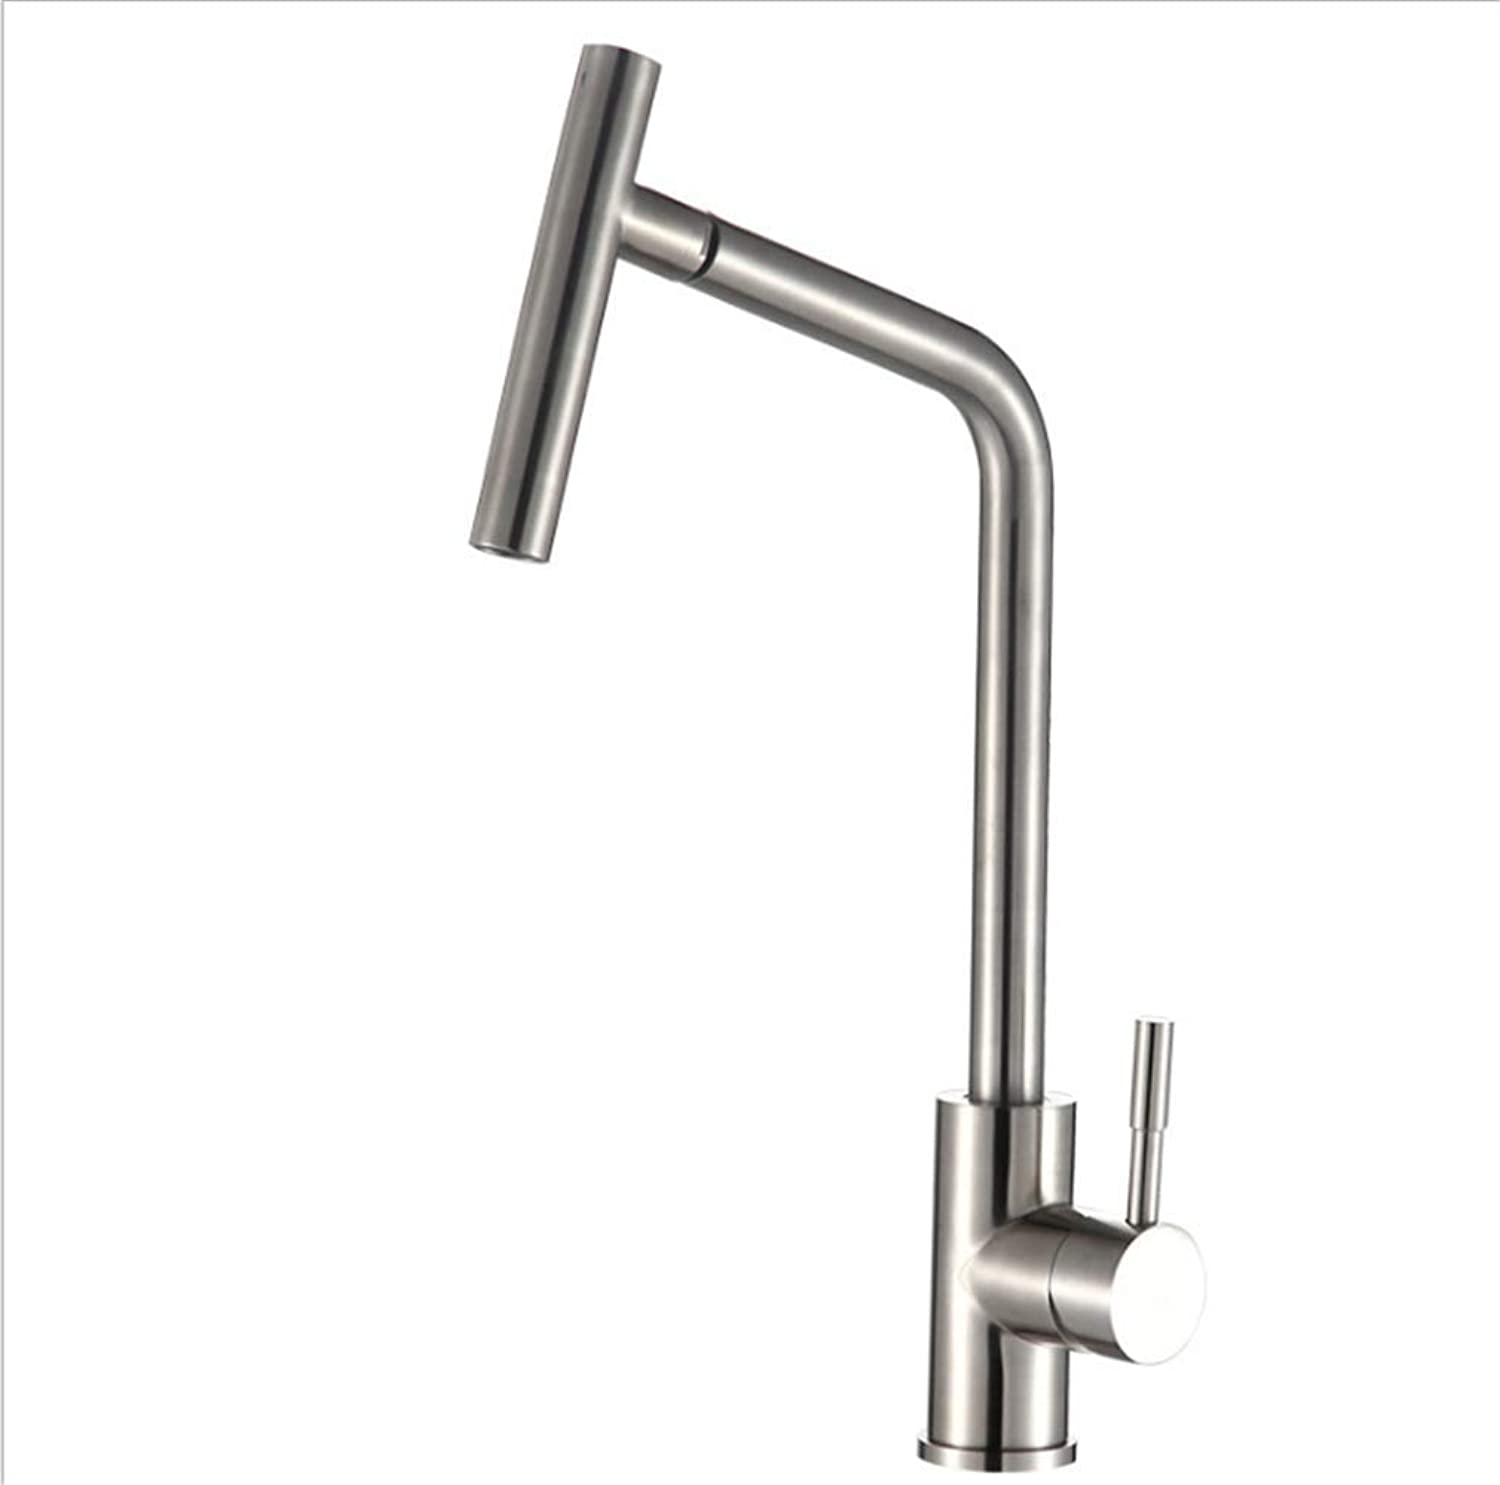 Kitchen Taps Faucet Modern Kitchen Sink Taps Stainless Steel304 Stainless Steel Faucet Lead-Free Kitchen Washing Pot Cold and Hot Water Faucet redating